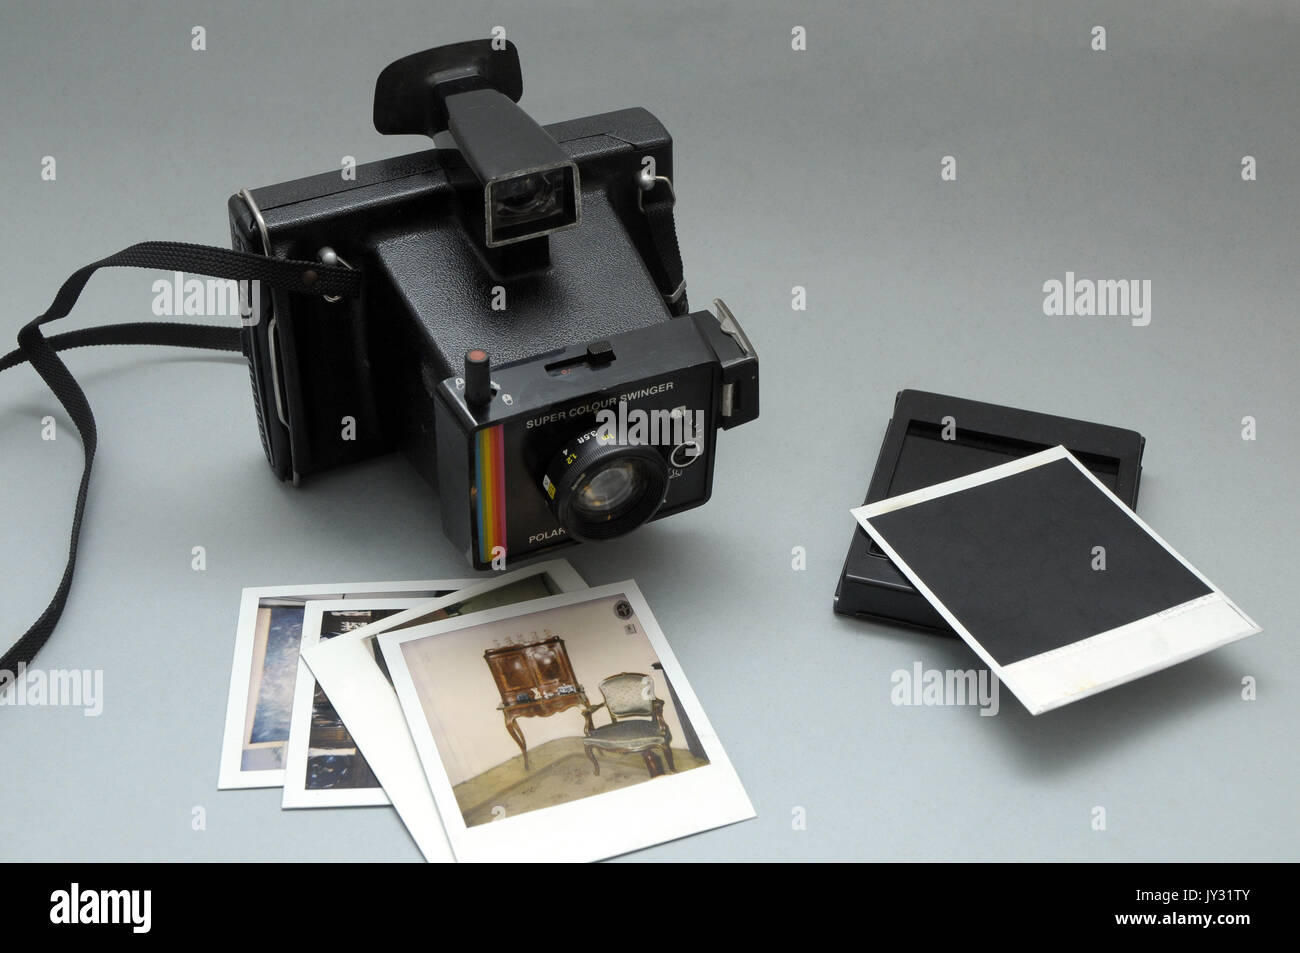 Polaroid camera, Super Color Swinger model, vintage in very good condition and polartoid pictures - Stock Image